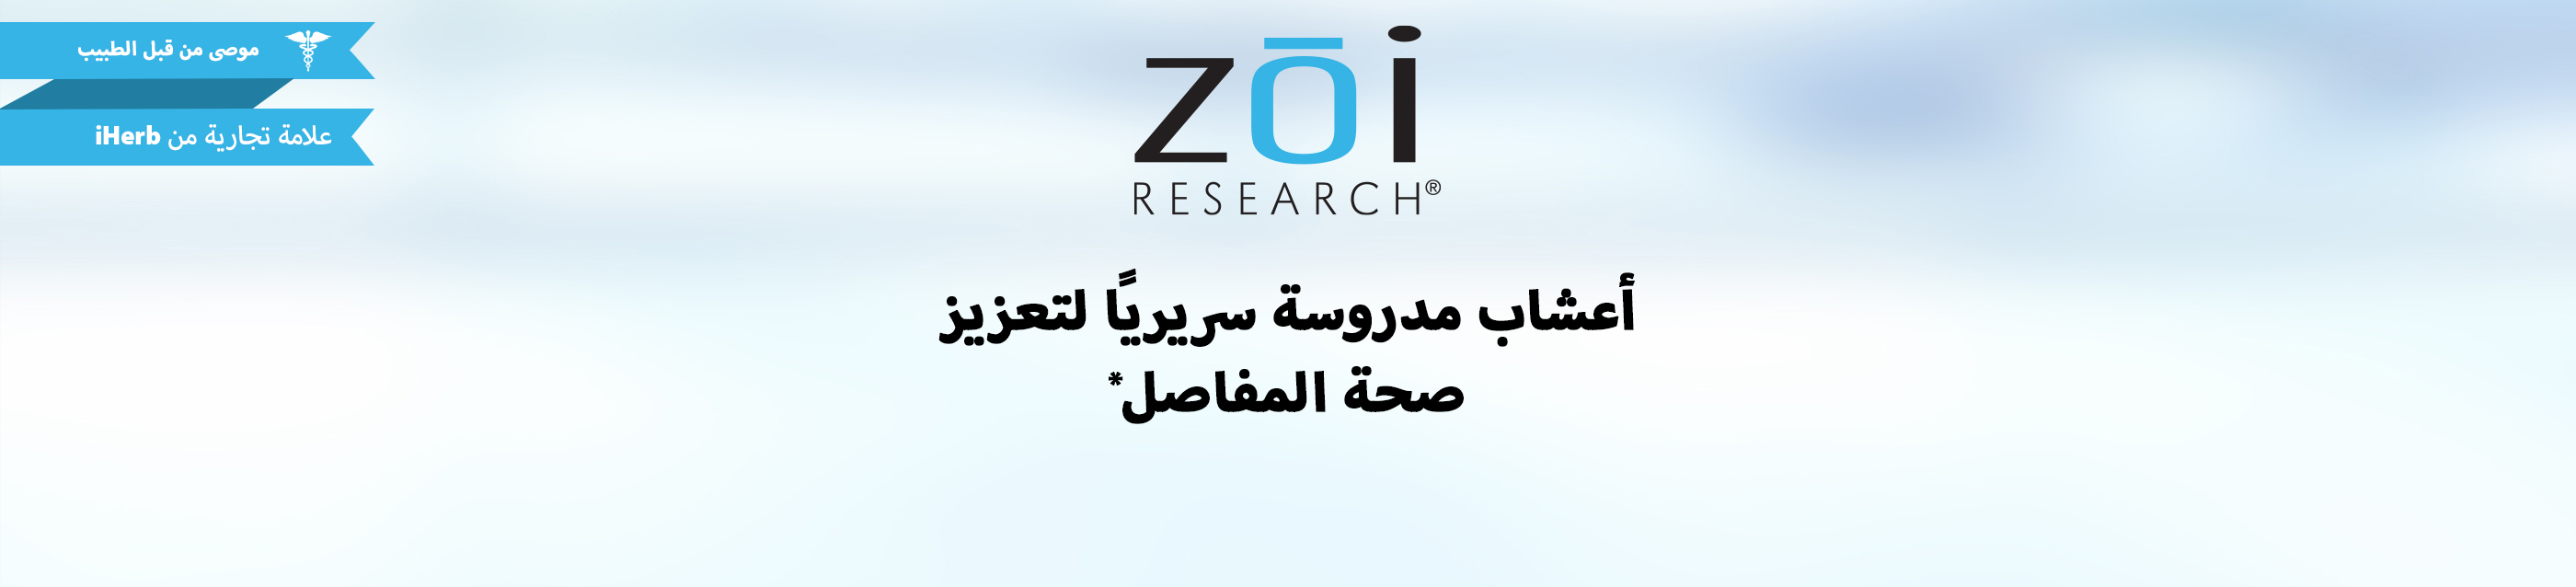 Zoi Research Joint Health